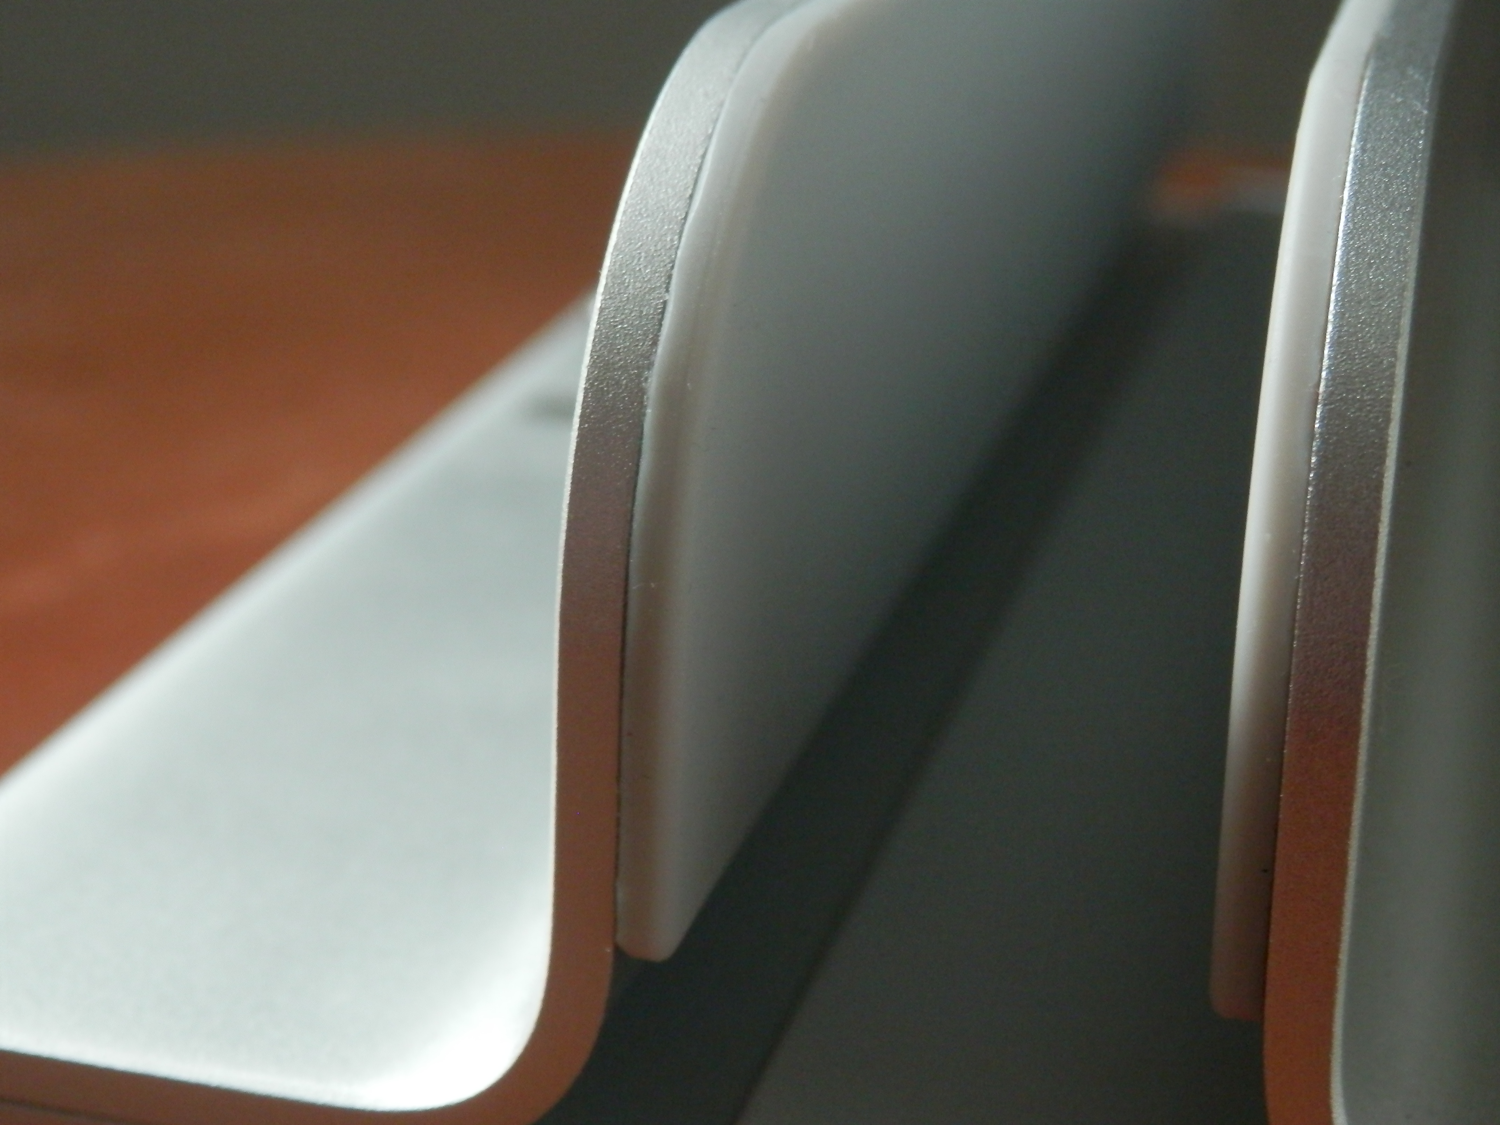 iQunix MacBook Stand Review grips inside